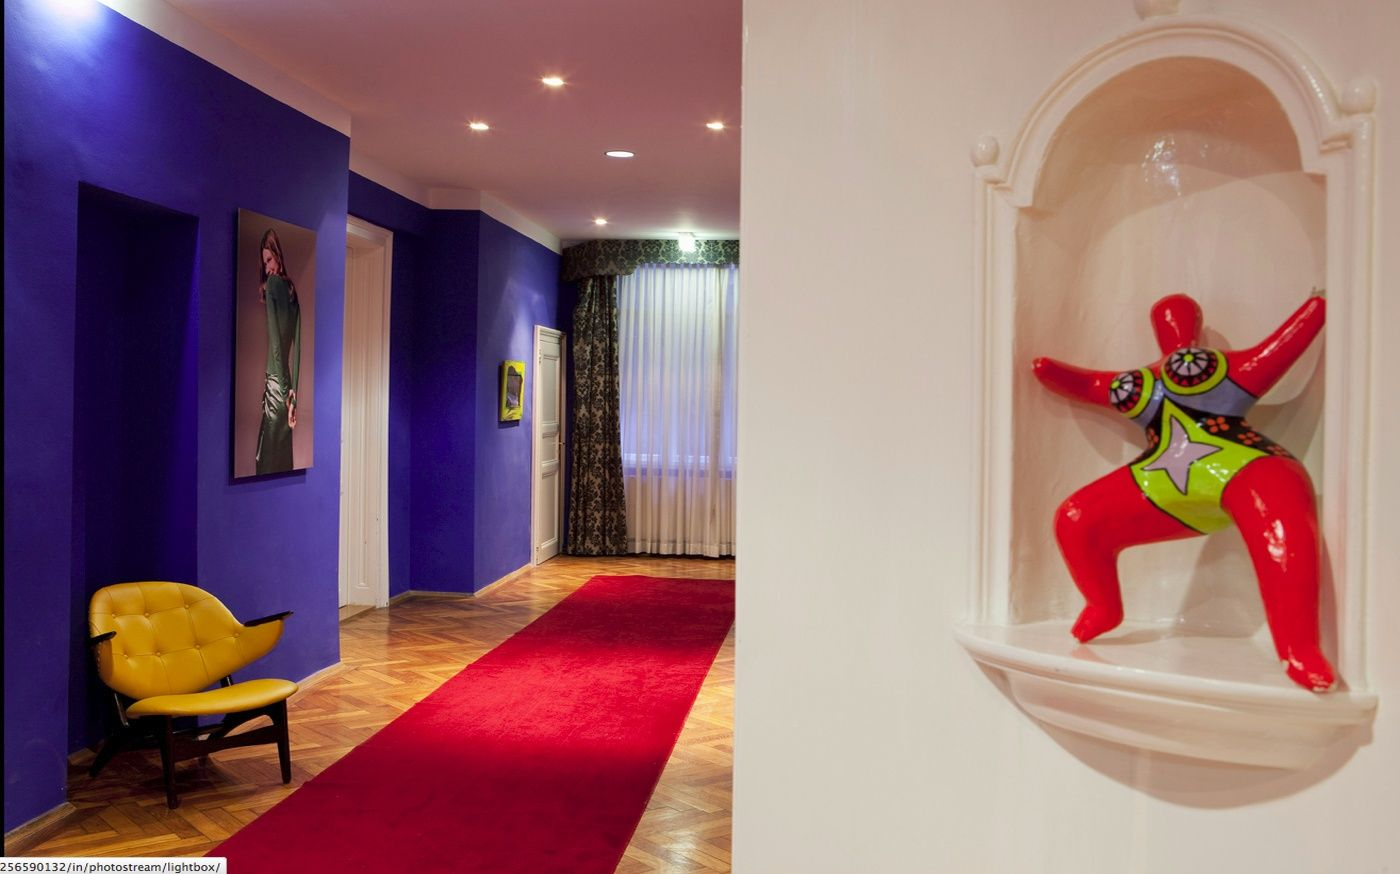 Contact altstadt vienna through great small hotels an exclusive selection of boutique hotels and small luxury